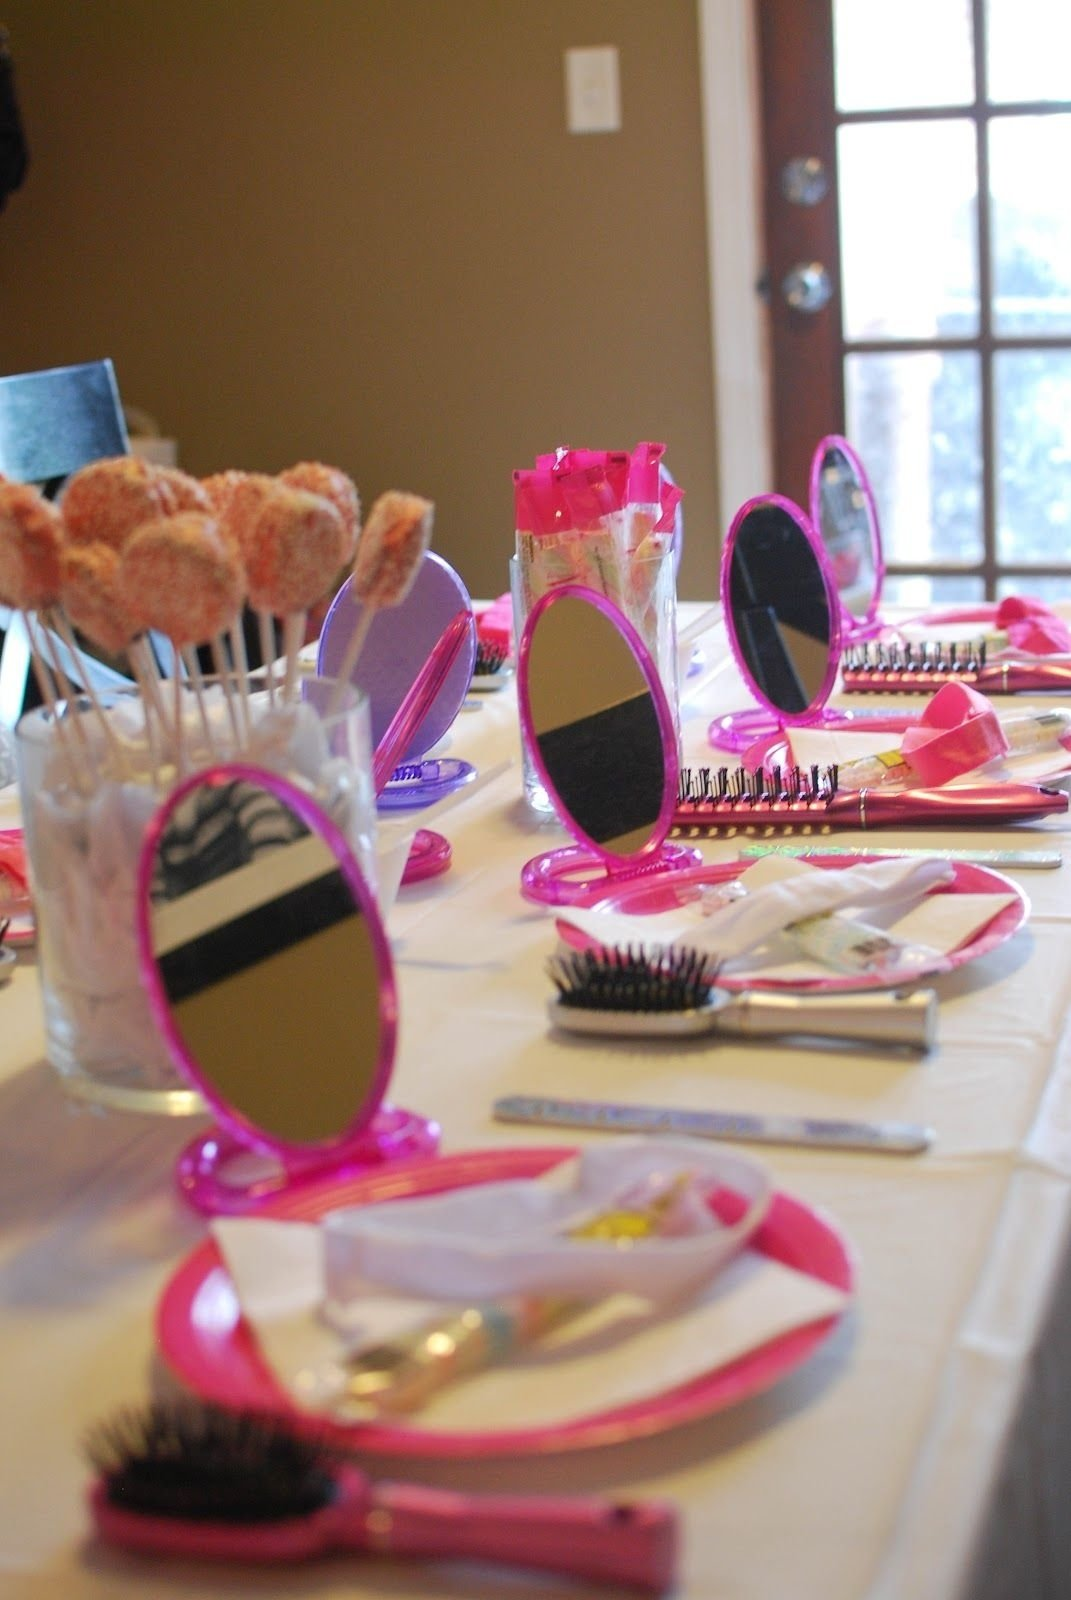 10 Stunning Ideas For Girls Birthday Party spa party ideas for 8 yr old girls remember this for the twins via 22 2020